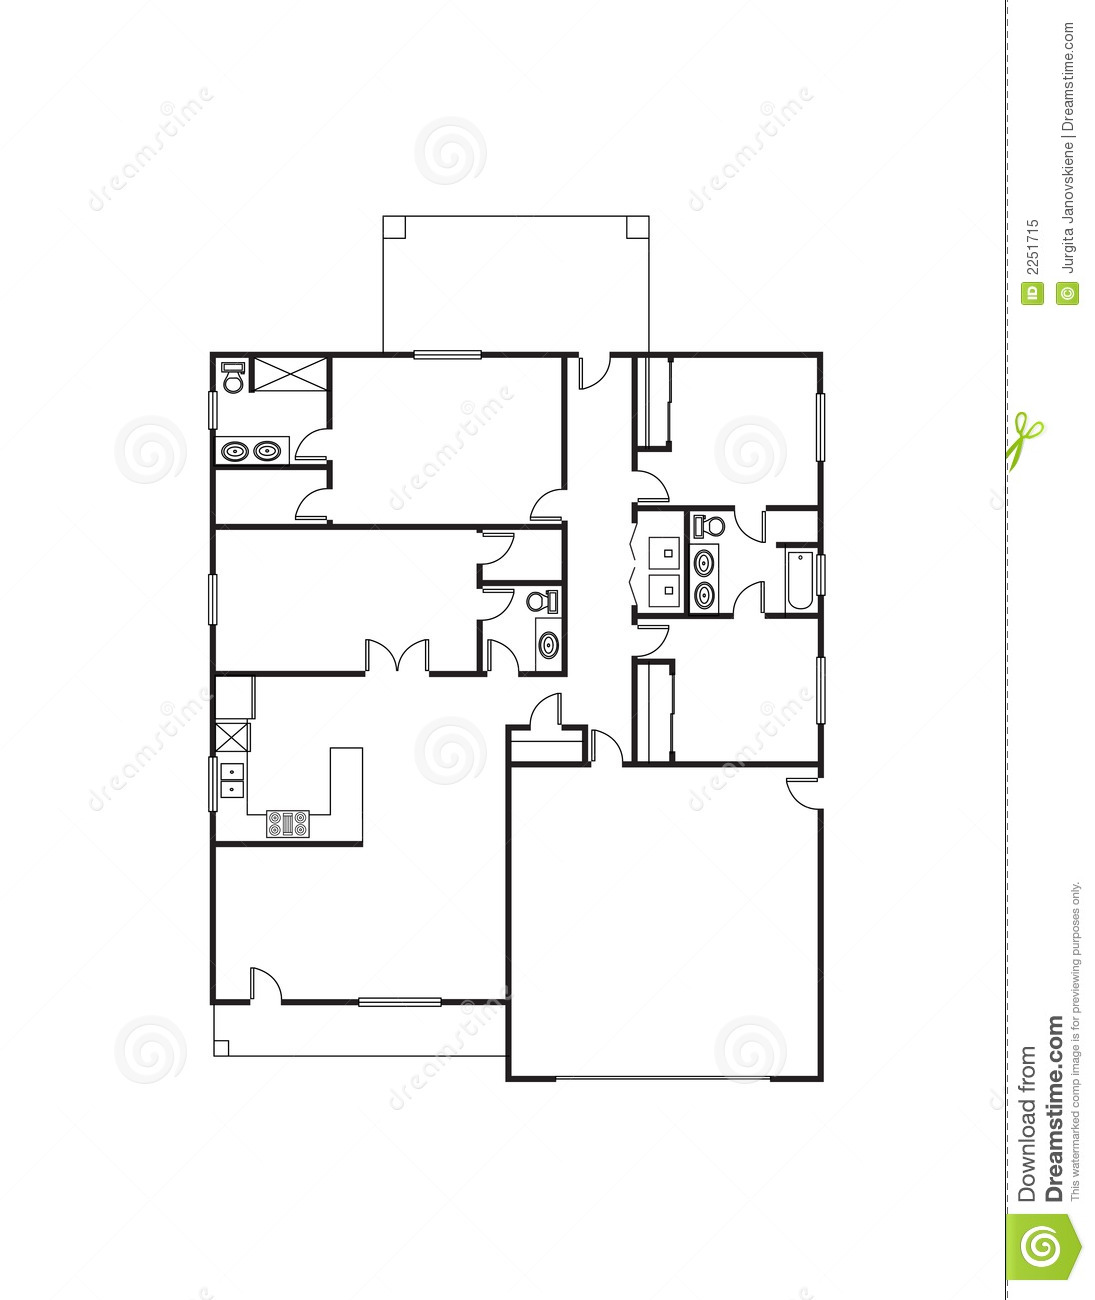 House plan royalty free stock photo image 2251715 for Home plan com